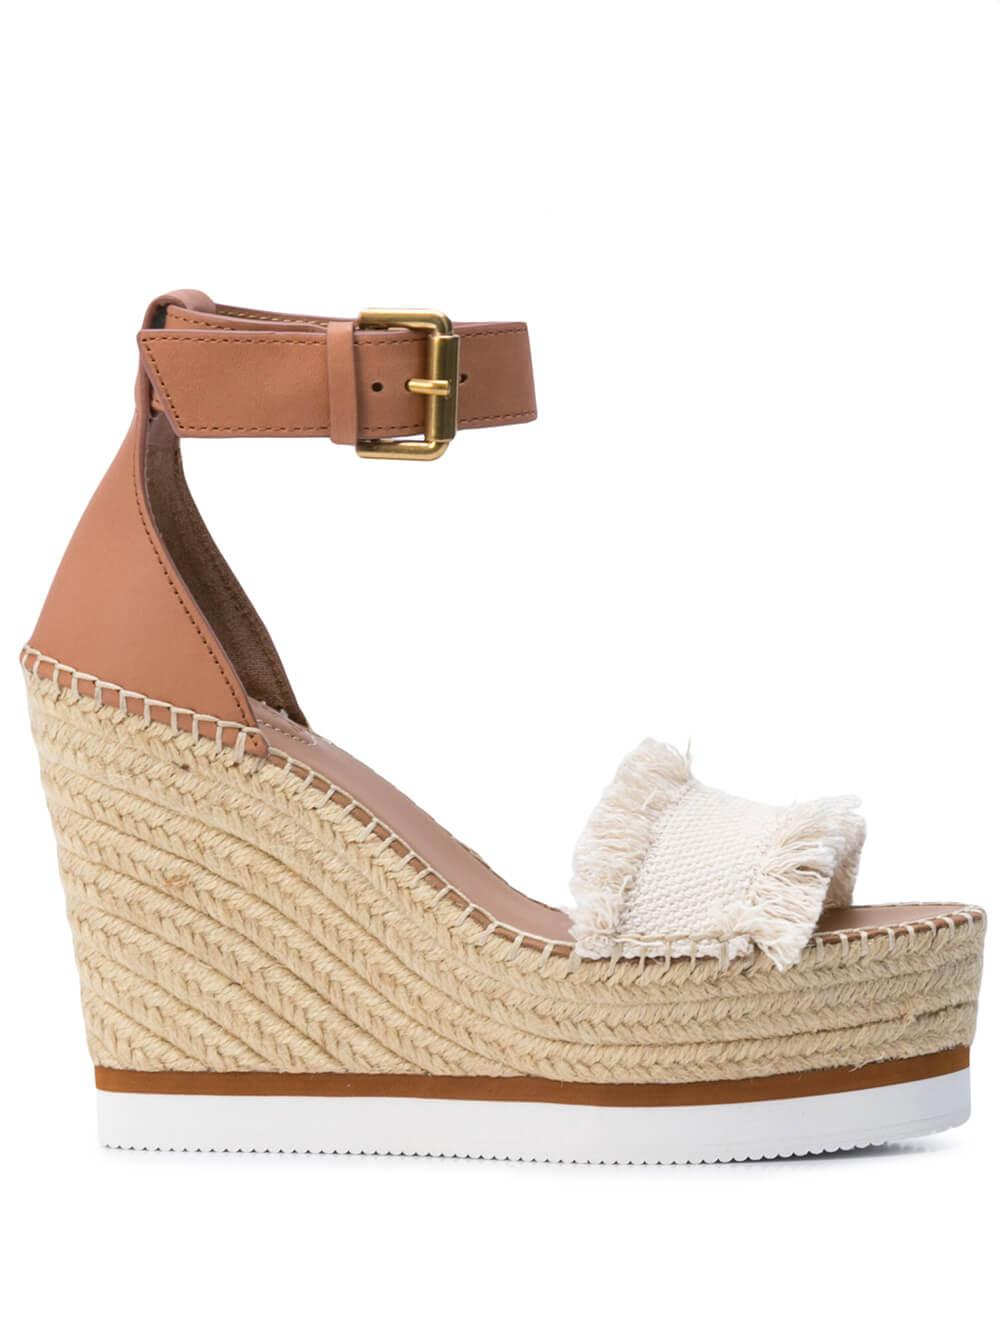 Leather Wedge With Ankle Strap